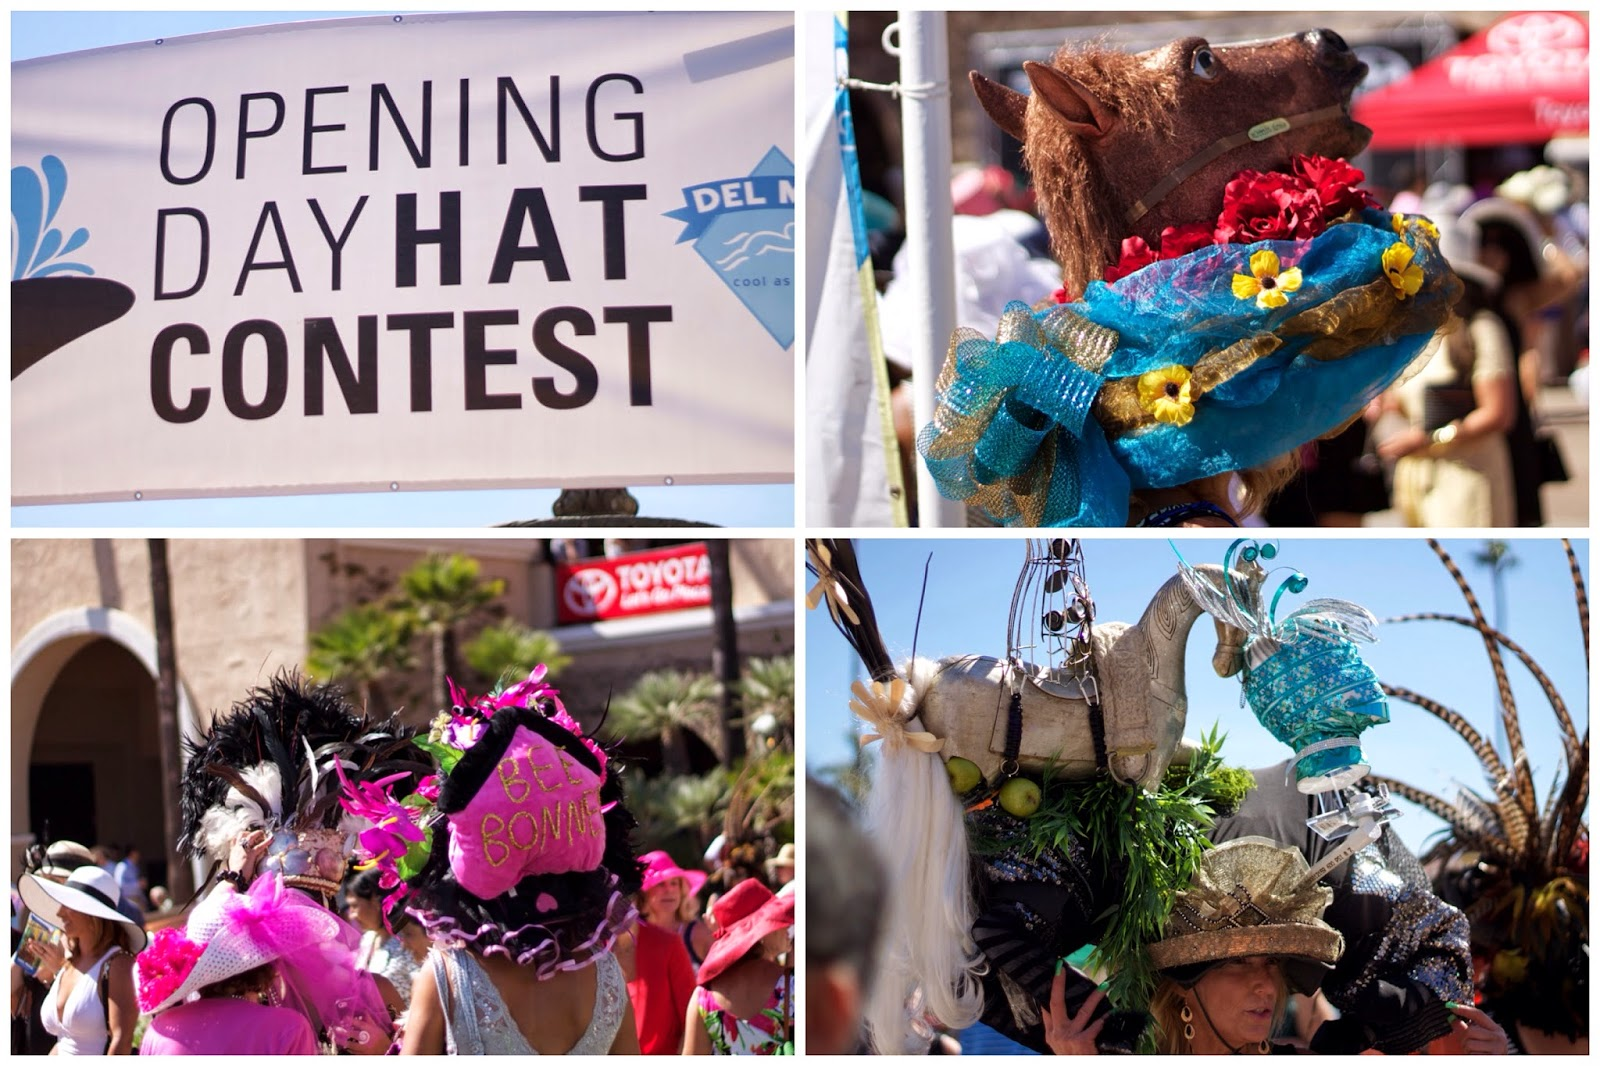 Opening Day Hat Contest 2014, Opening Day Hat Contest San Diego 2014, Opening Day Hat Contest Del Mar, crazy hats, creative hats